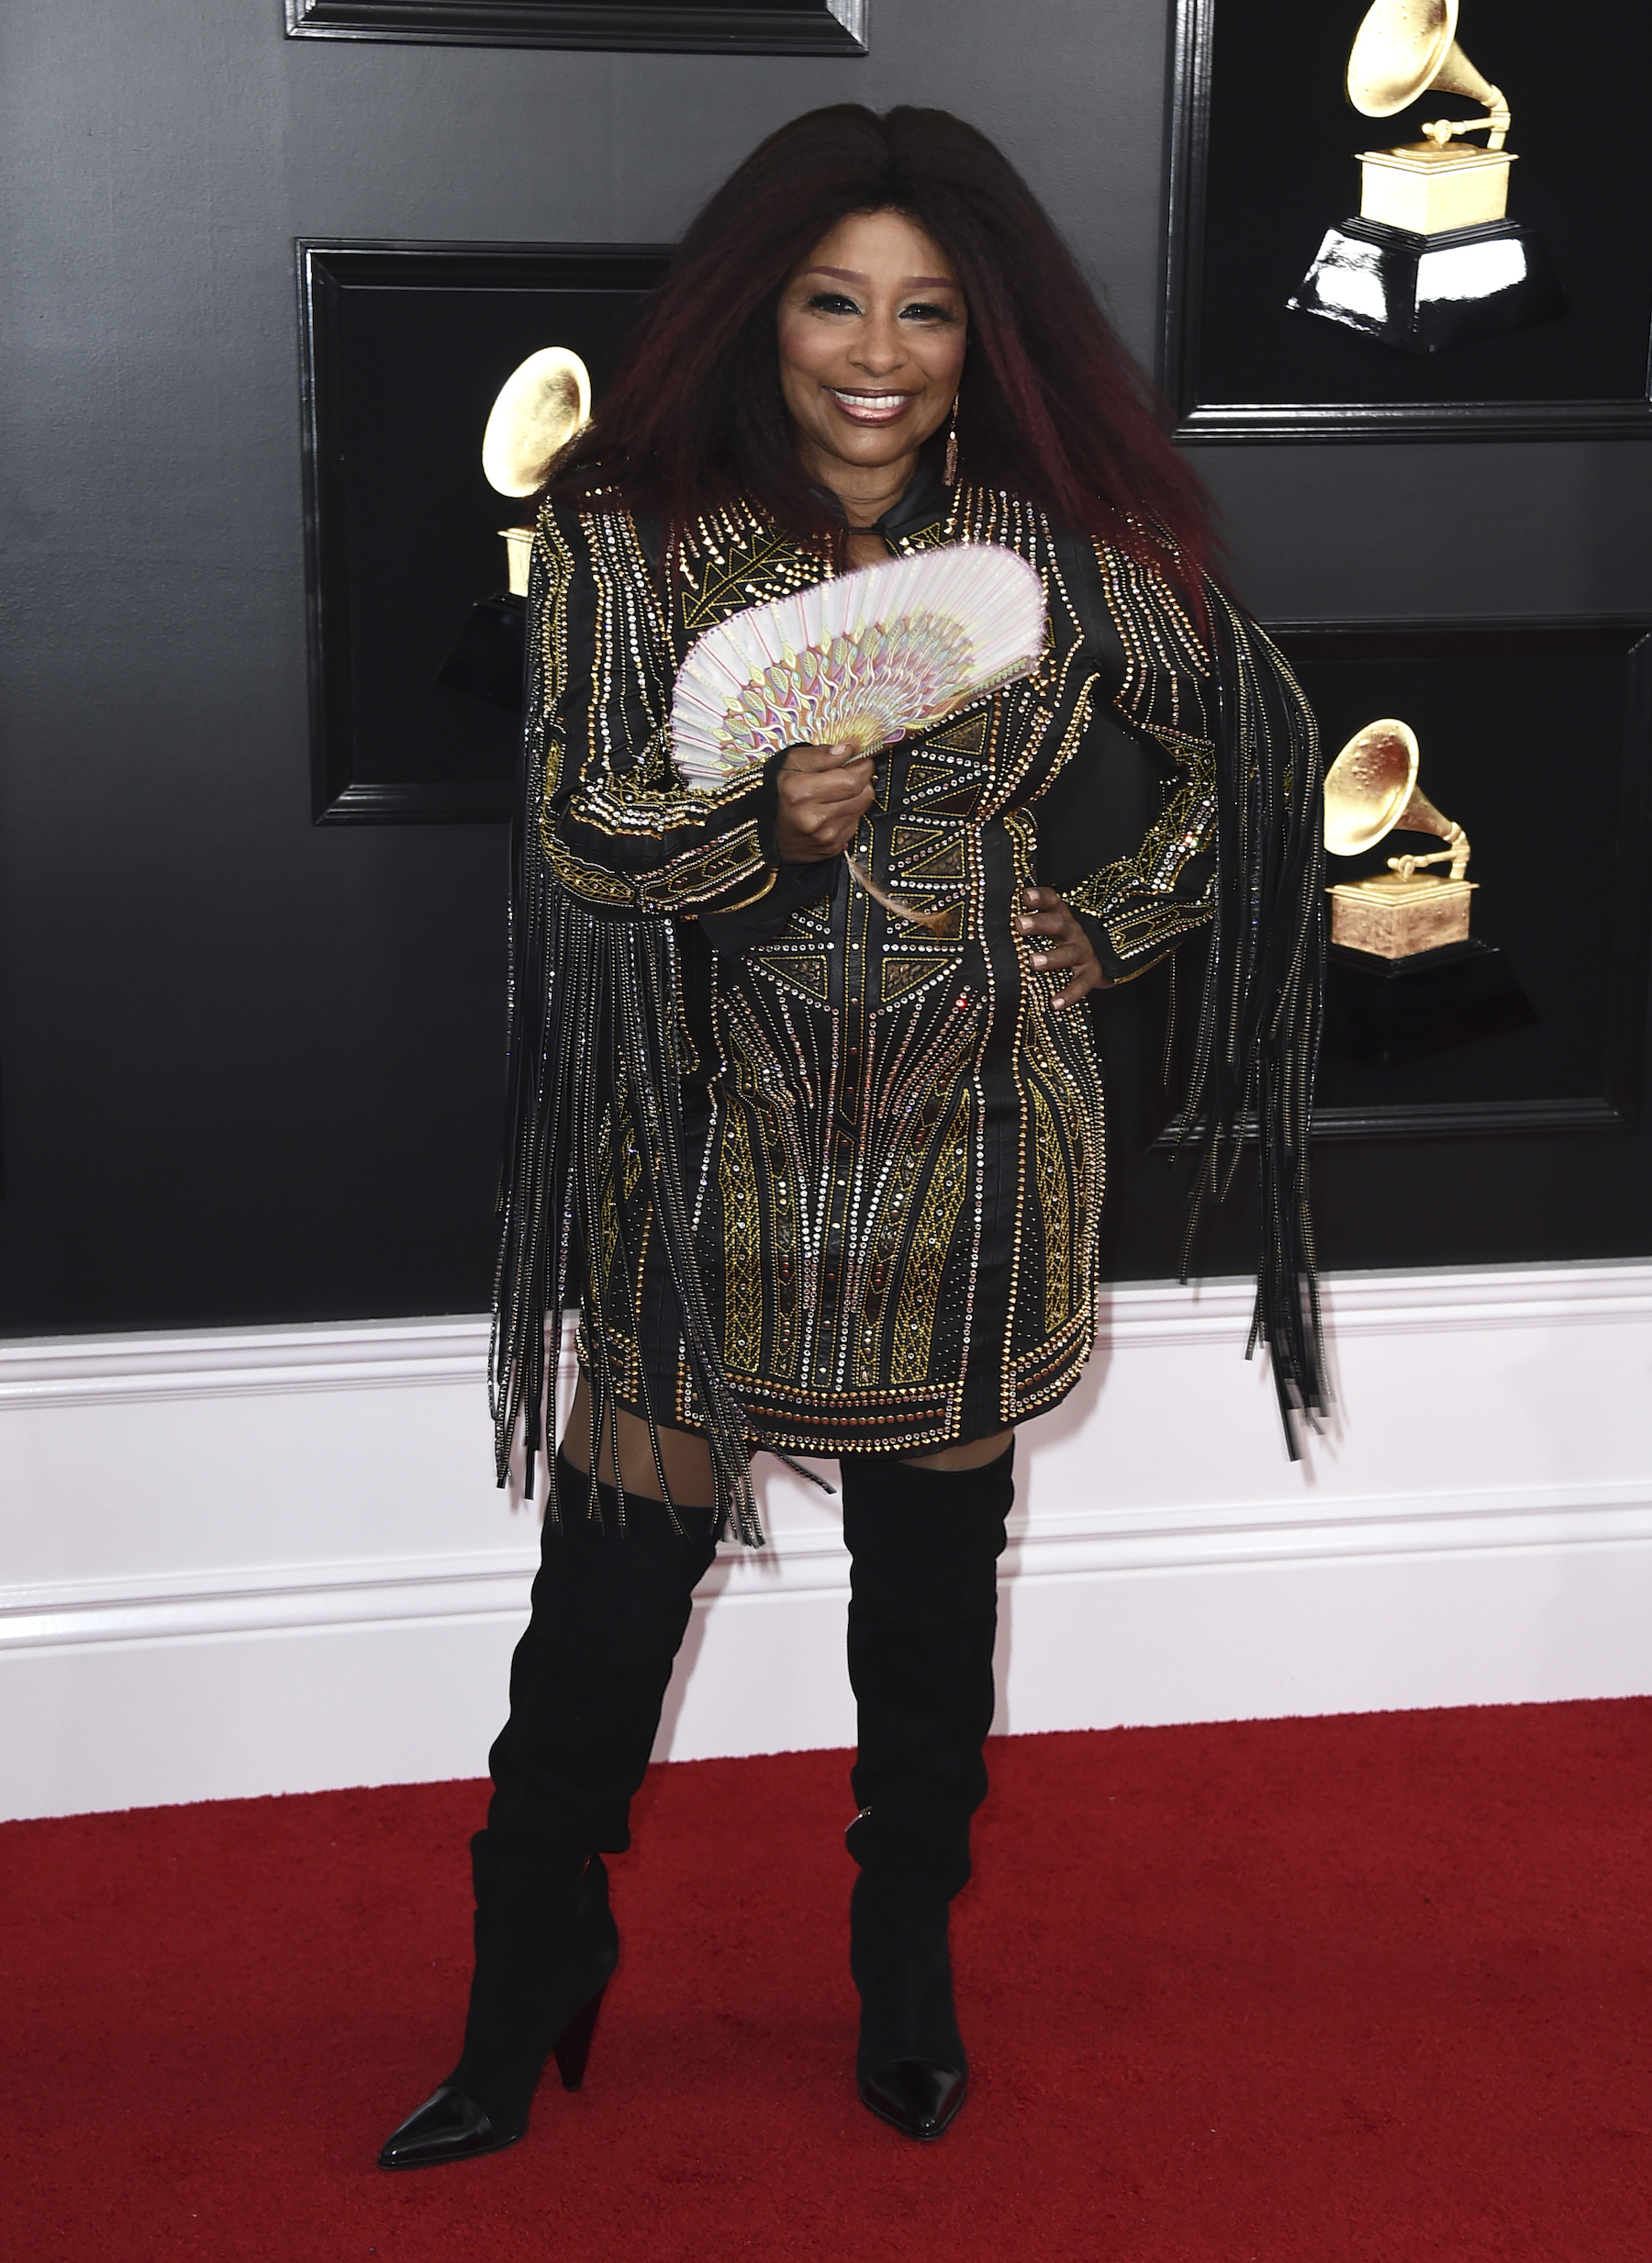 <div class='meta'><div class='origin-logo' data-origin='AP'></div><span class='caption-text' data-credit='Jordan Strauss/Invision/AP'>Chaka Khan arrives at the 61st annual Grammy Awards at the Staples Center on Sunday, Feb. 10, 2019, in Los Angeles.</span></div>